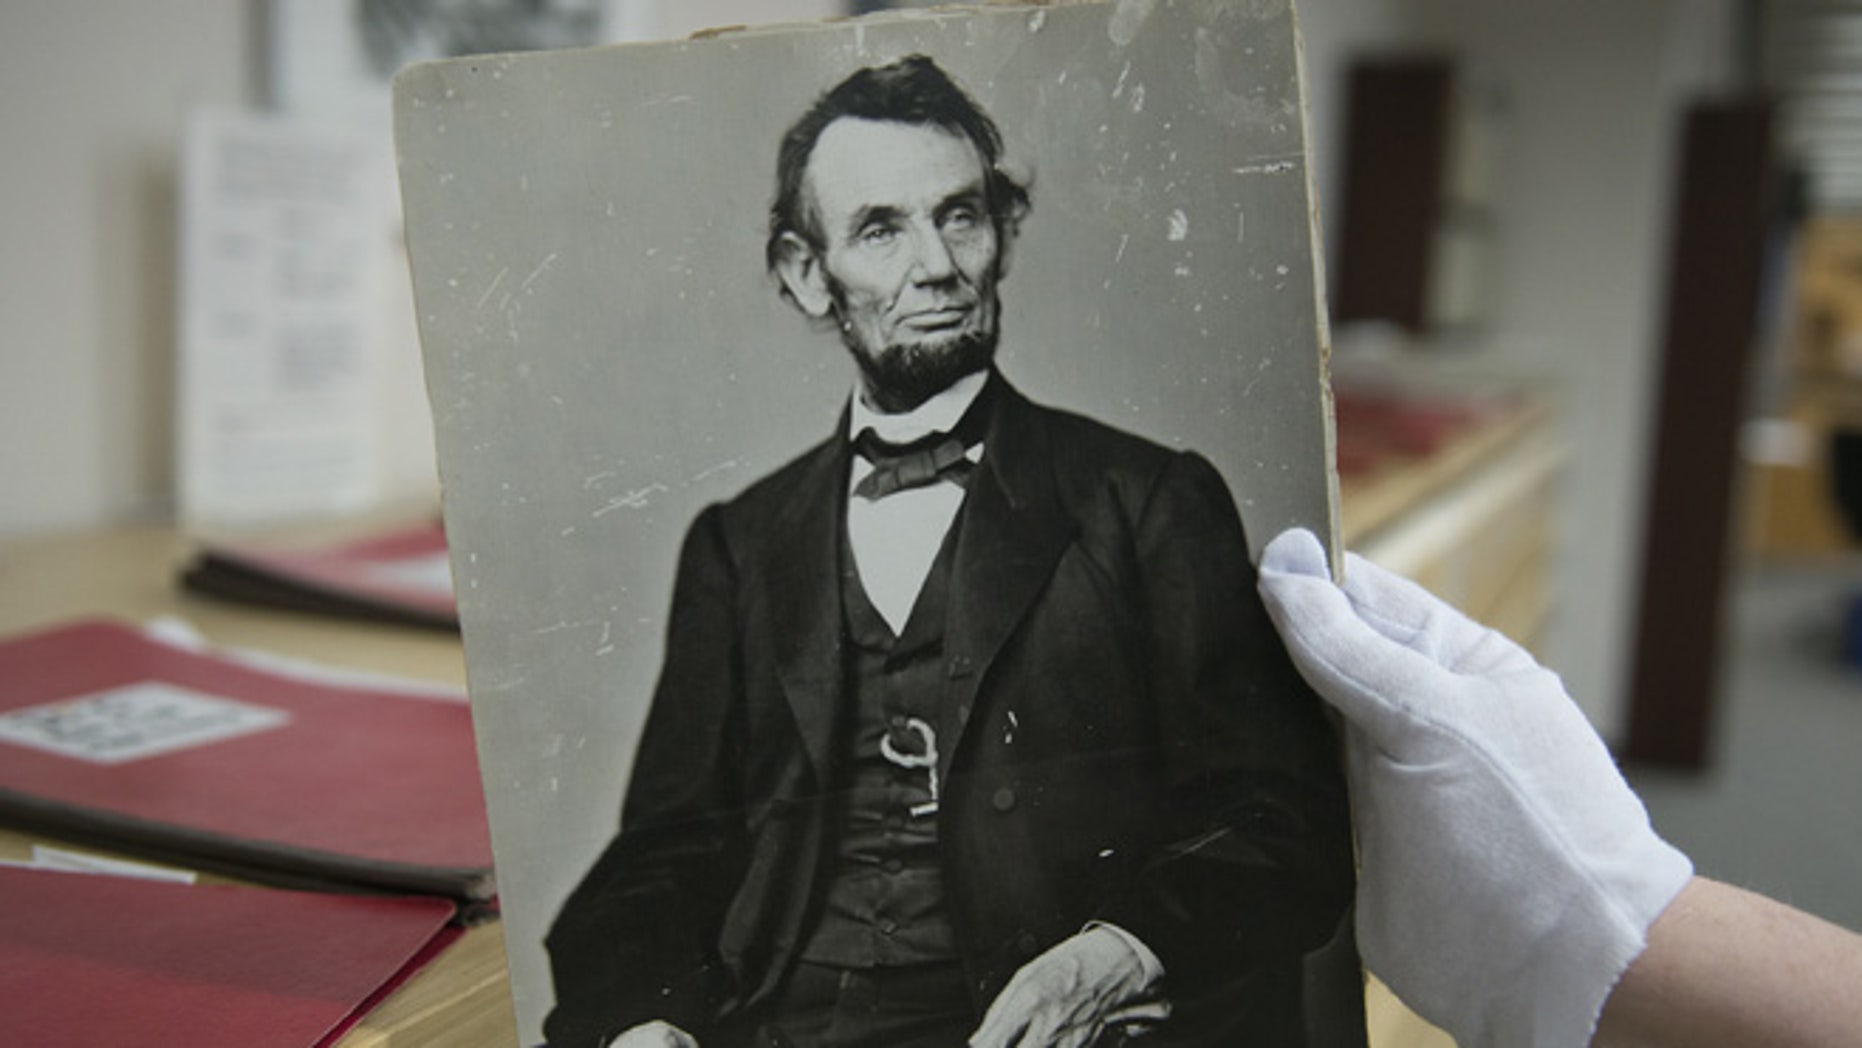 April 6, 2015: Karen Needles holds up a photograph of President Abraham Lincoln at the National Archives in College Park, Md.